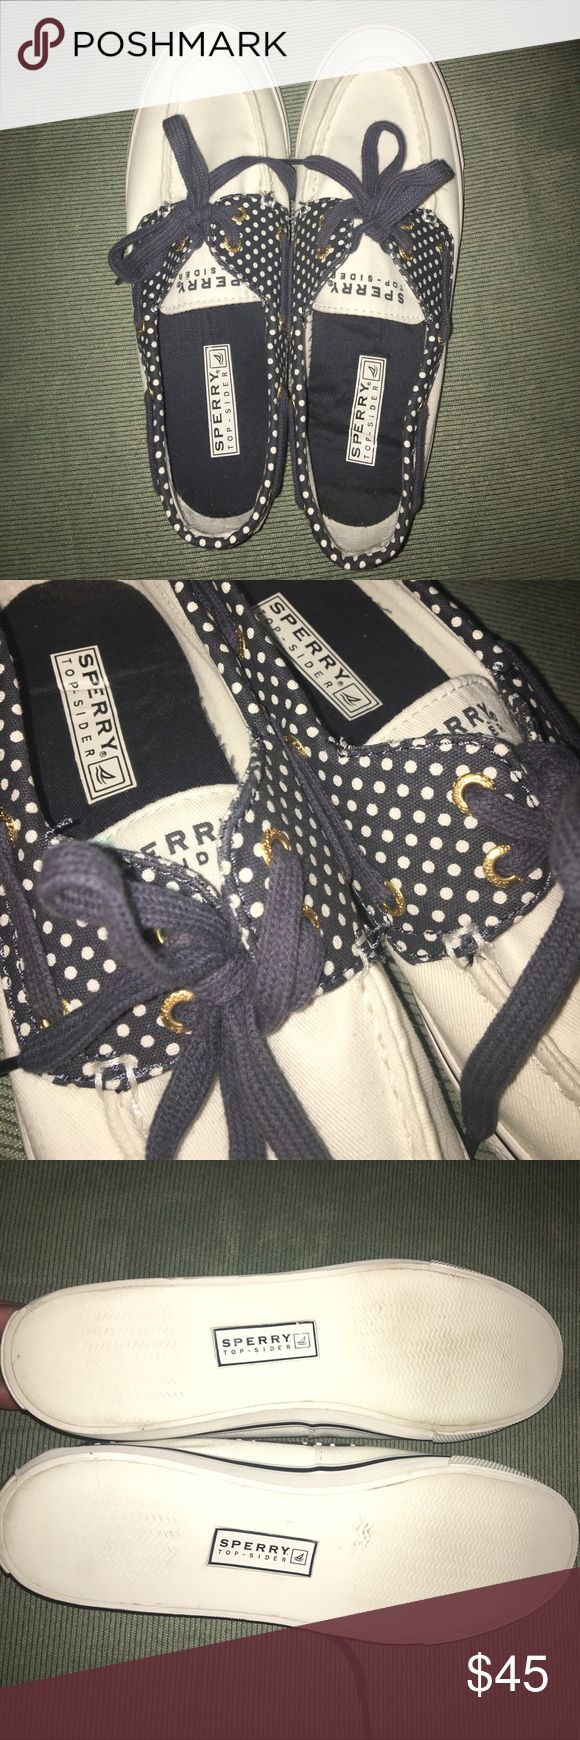 SALE! 🎈 canvas Sperry boat shoes White and navy polka dot canvas Sperry boat shoes. Worn once for a few hours. Size 7. Originally $60. Super cute! Sperry Shoes Flats & Loafers